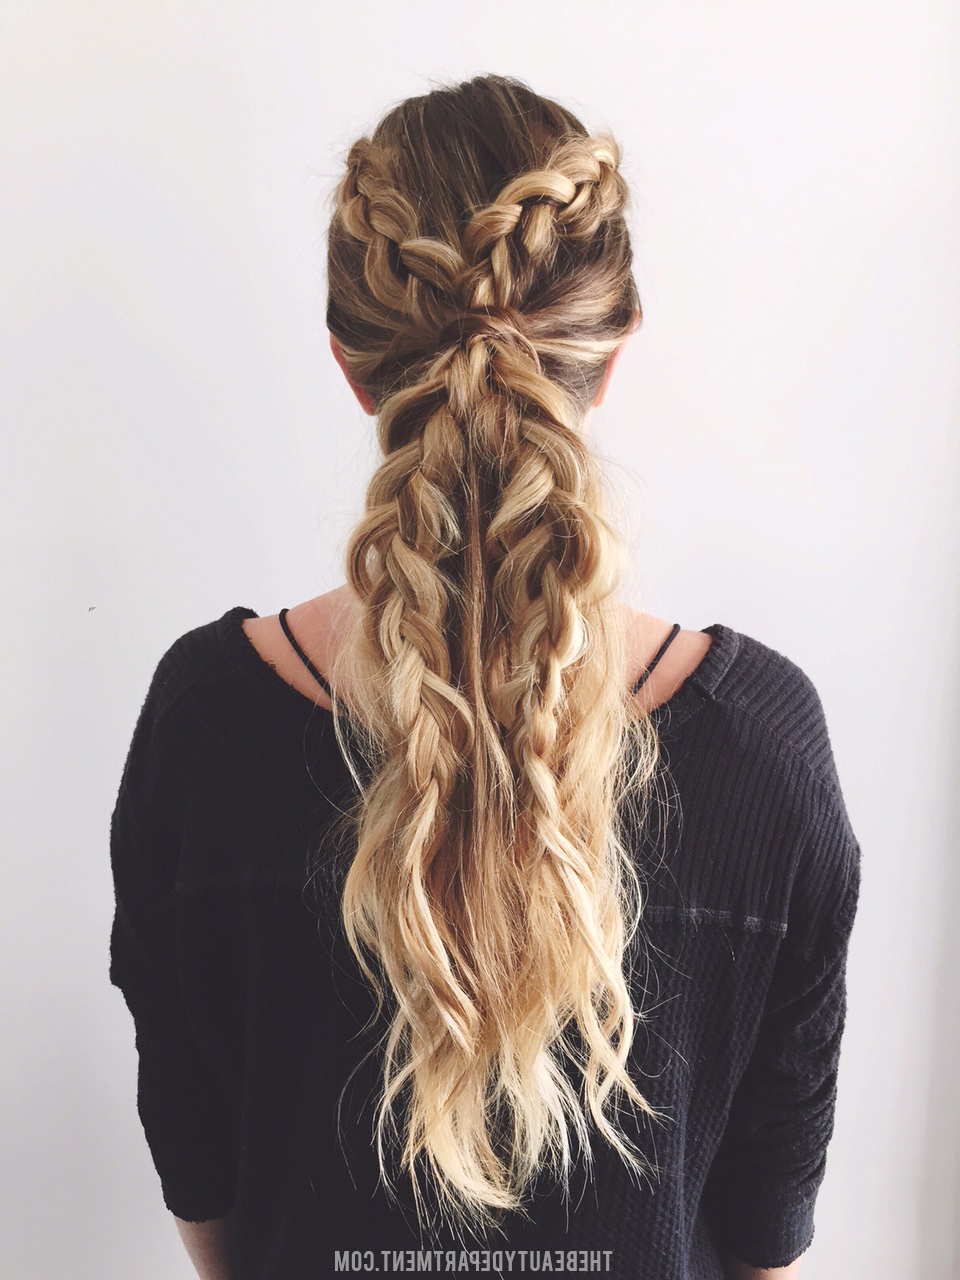 Well Known Long Hairstyles With Multiple Braids With The Beauty Department: Your Daily Dose Of Pretty (View 11 of 20)